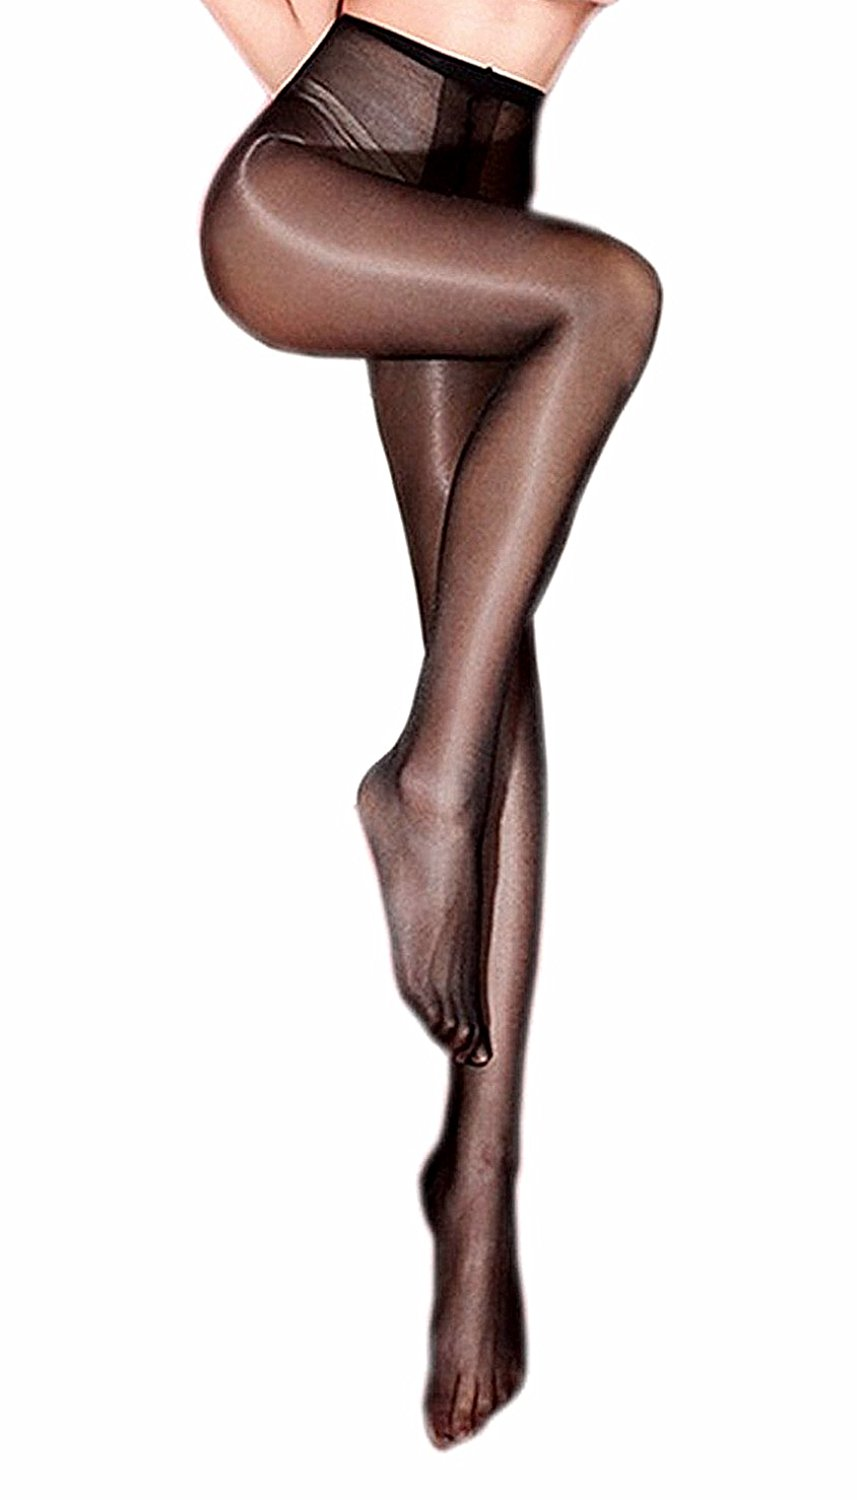 babbf06d69e24 Get Quotations · Kffyeye Sheer Pantyhose High Waist Open Crotch Tights  Shiny Silk Stockings, Ultra Shimmery Plus Footed